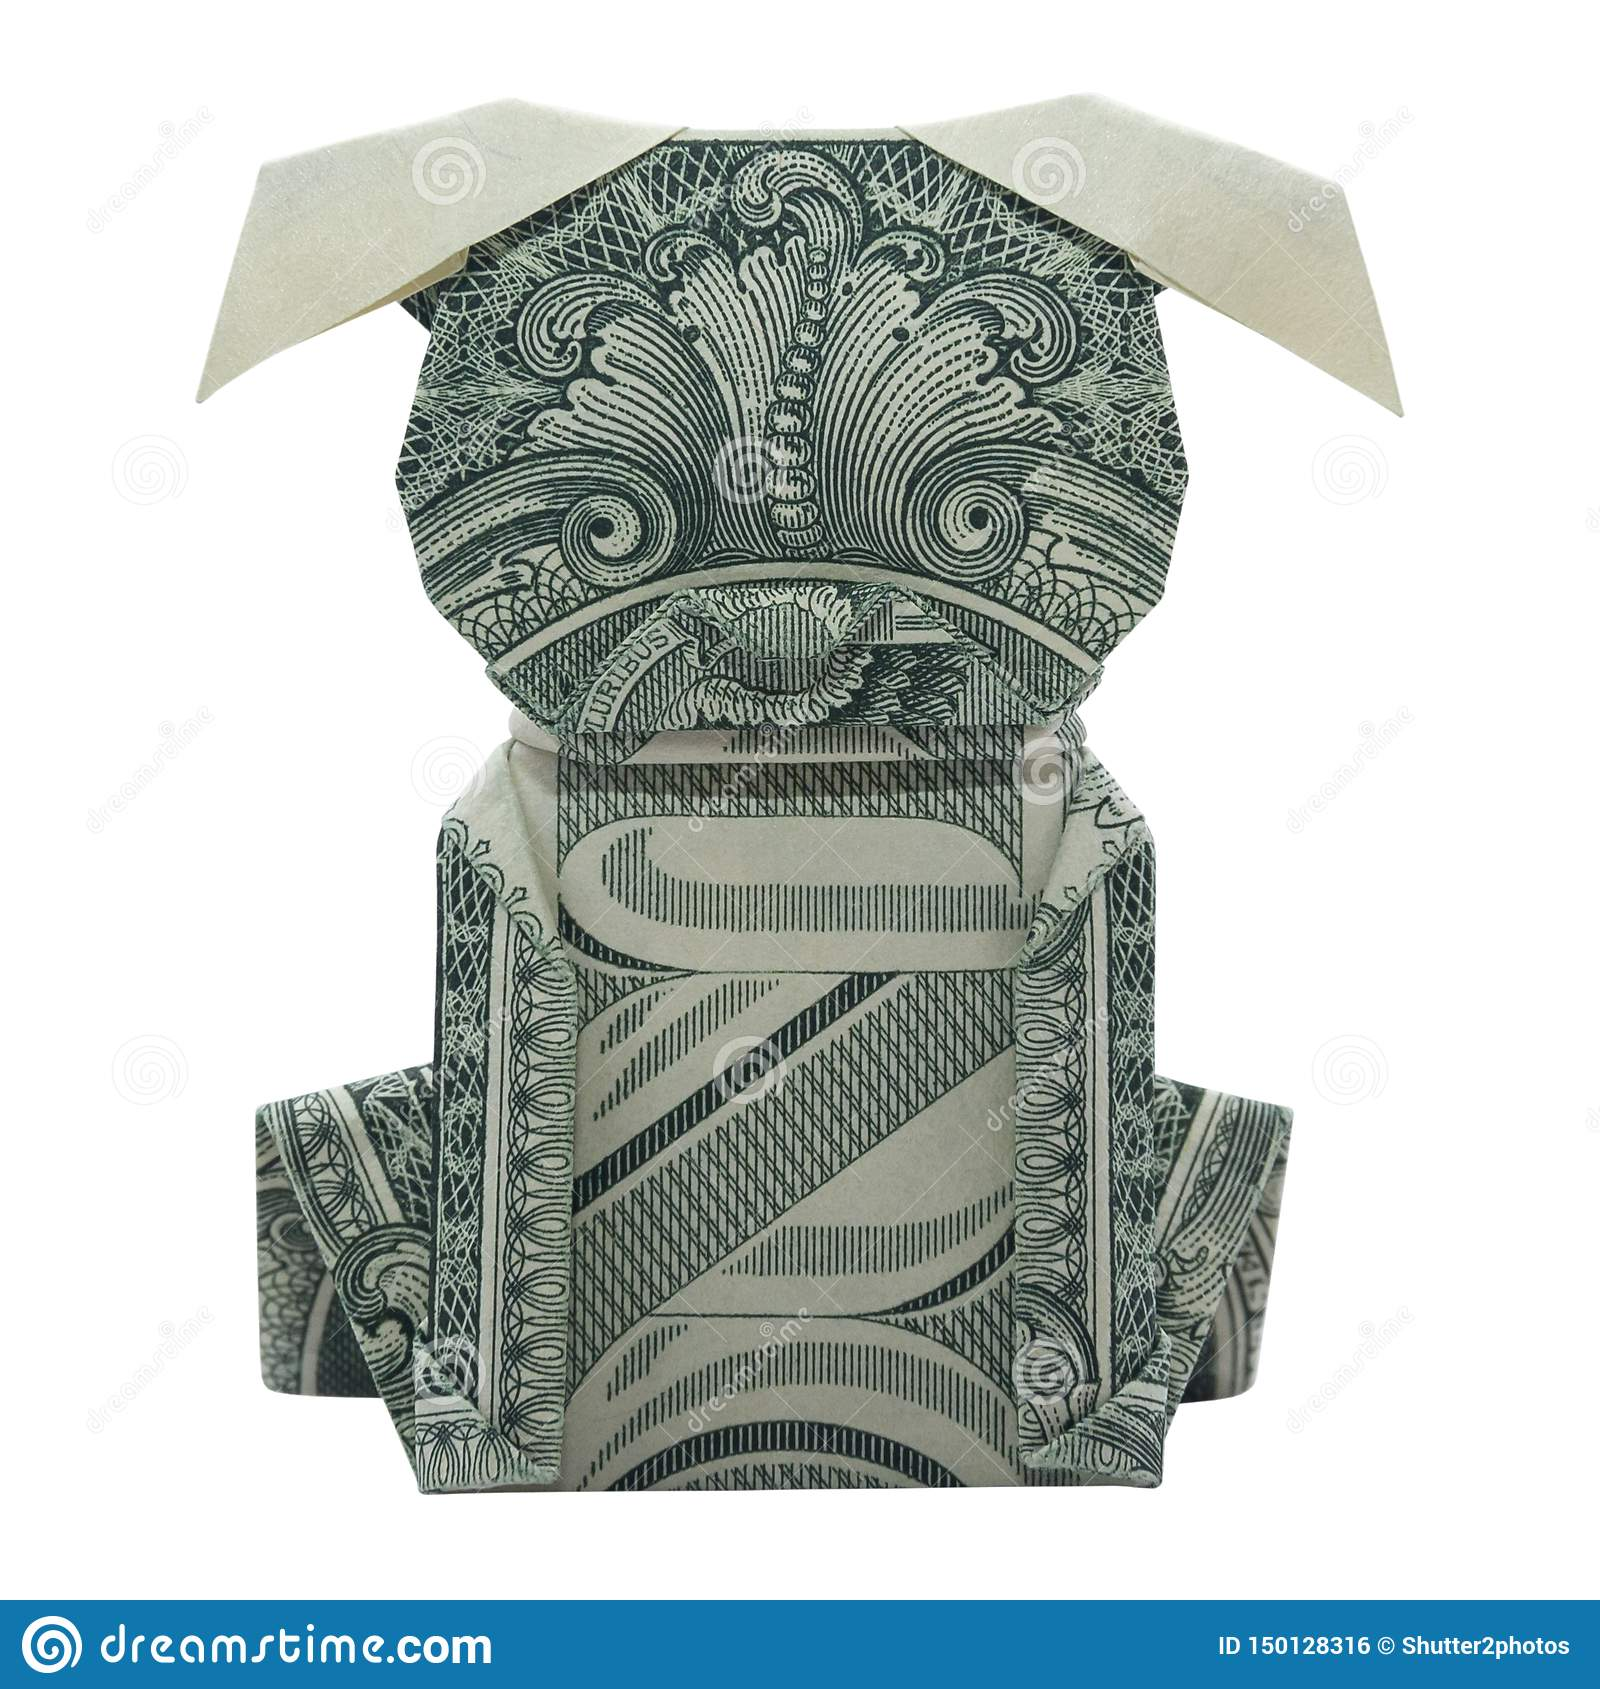 Money Origami Puppy Dog Folded with Real One Dollar Bill Isolated